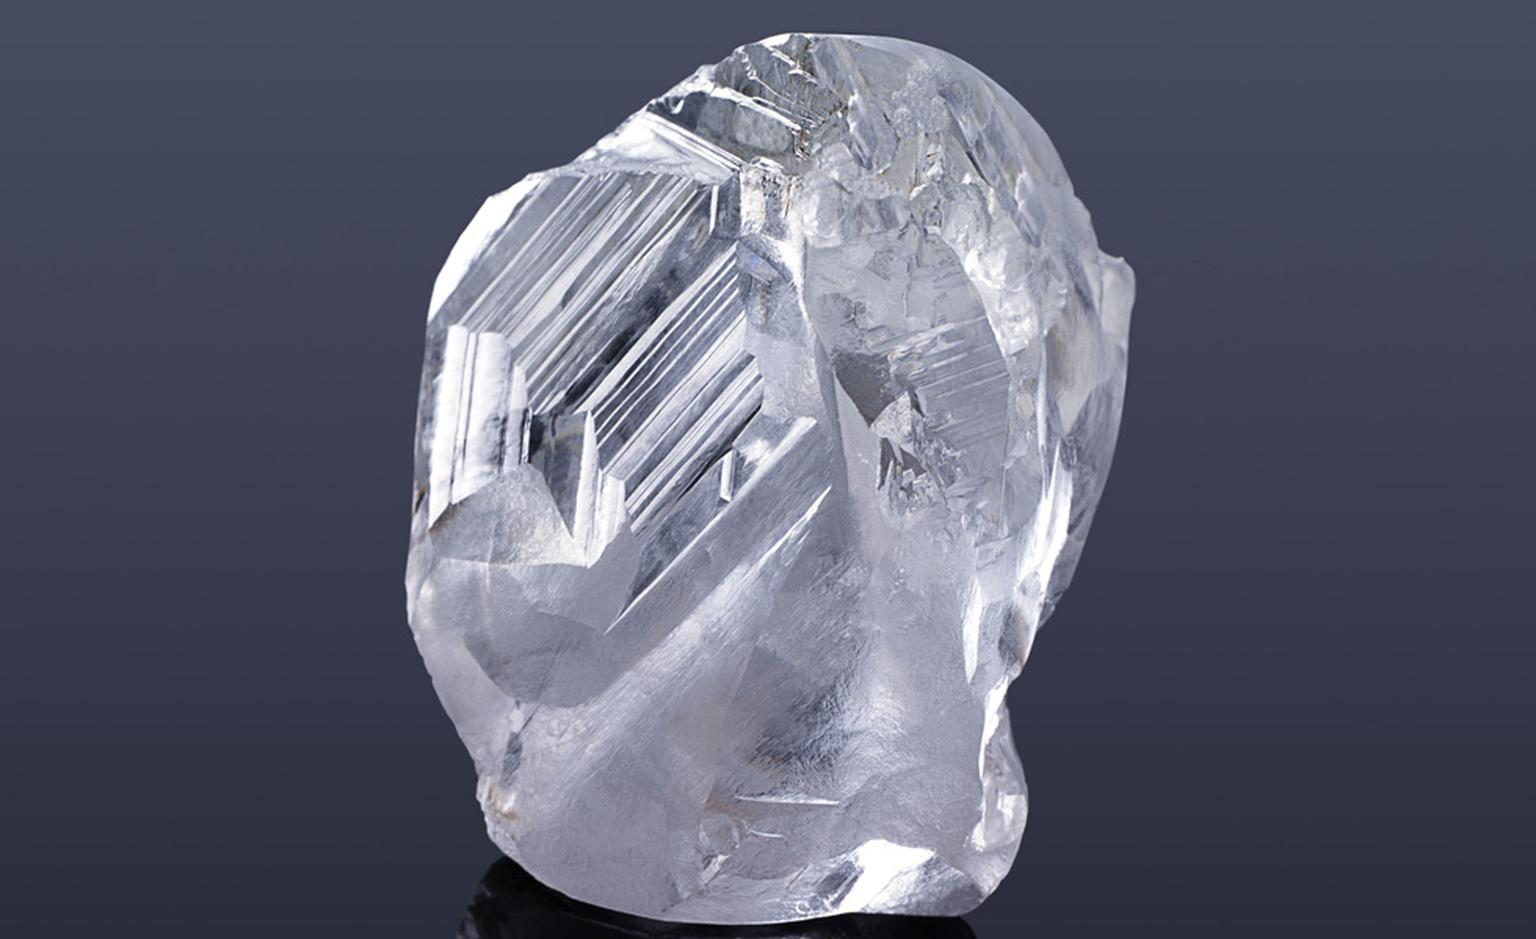 Recently acquired by Laurence Graff, a rough diamond of 184-cts from the Letseng Mine in Lesotho